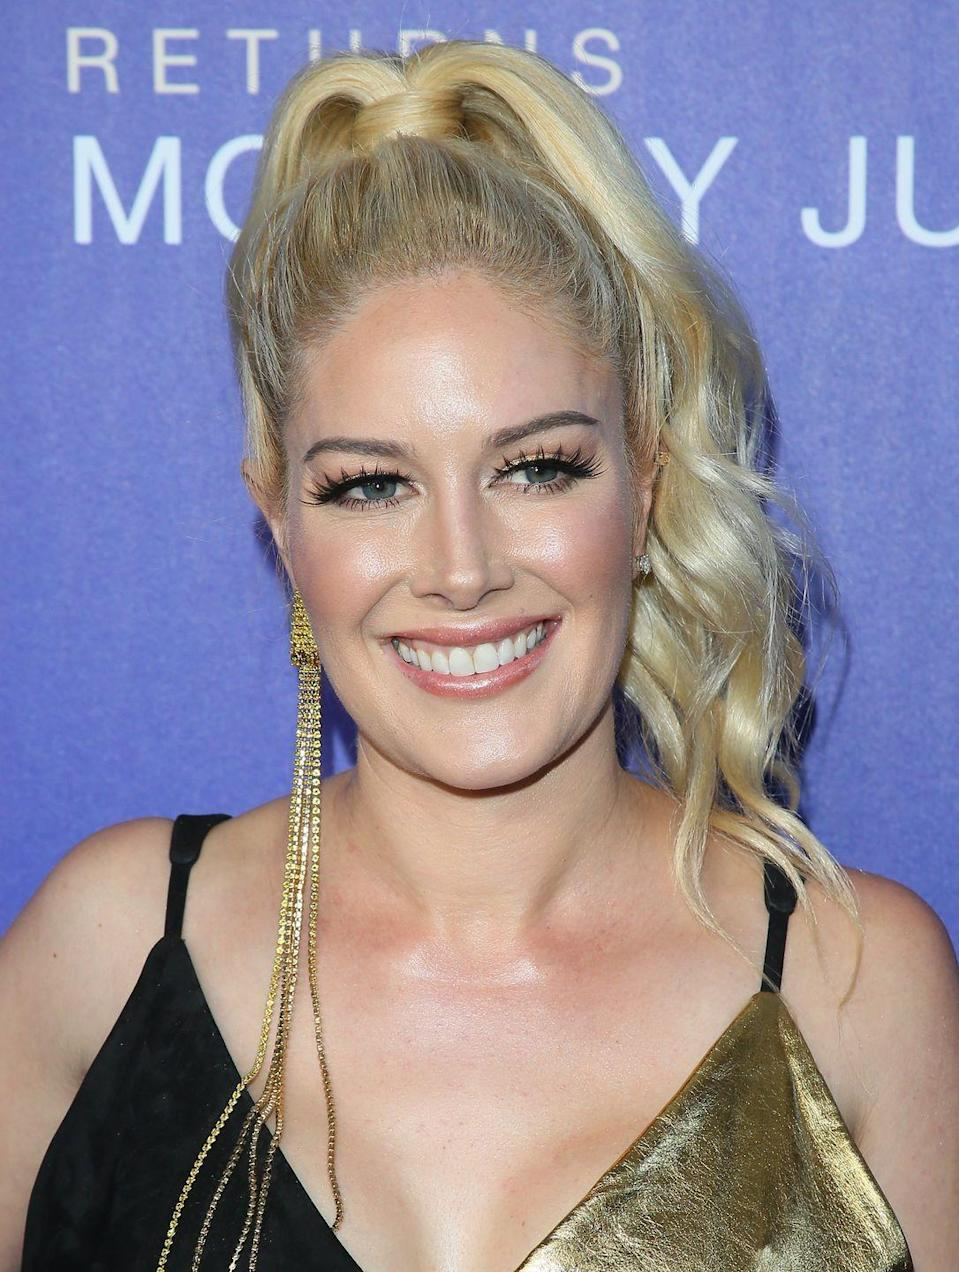 "<p><em>The Hills </em>star Heidi Montag famously underwent 10 cosmetic surgeries in one day in 2010. In hindsight, the TV star regretted making so many changes to her body. ""I was definitely way in over my head. I'm glad it worked out and you can't really reverse time,"" <a href=""https://www.today.com/news/heidi-montag-her-extreme-plastic-surgery-i-would-never-do-1C6553133"" rel=""nofollow noopener"" target=""_blank"" data-ylk=""slk:she said"" class=""link rapid-noclick-resp"">she said</a>. ""I kind of wanted a few enhancements and then it kind of got out of hand. I wasn't told really the repercussions and what would happen, emotionally and psychically, and the pain I would be in. I was kind of in shock.""</p>"